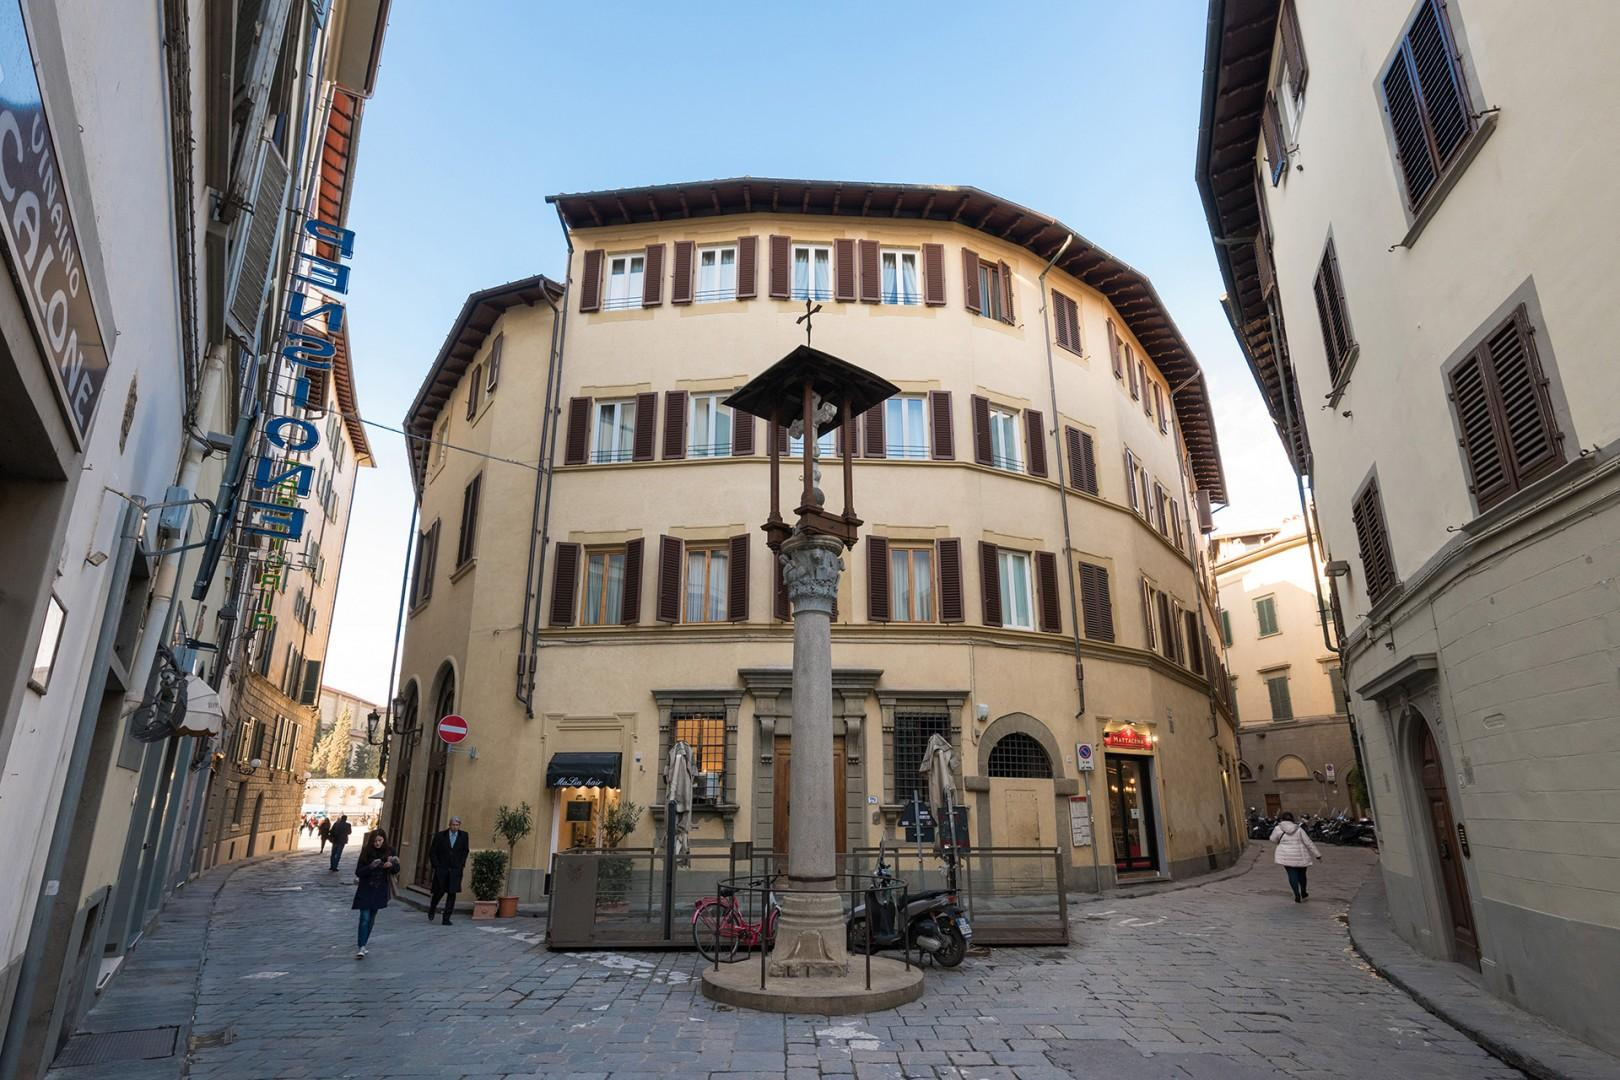 Charming piazza and memorial near Santa Maria Novella at the end of Via delle Belle Donne.